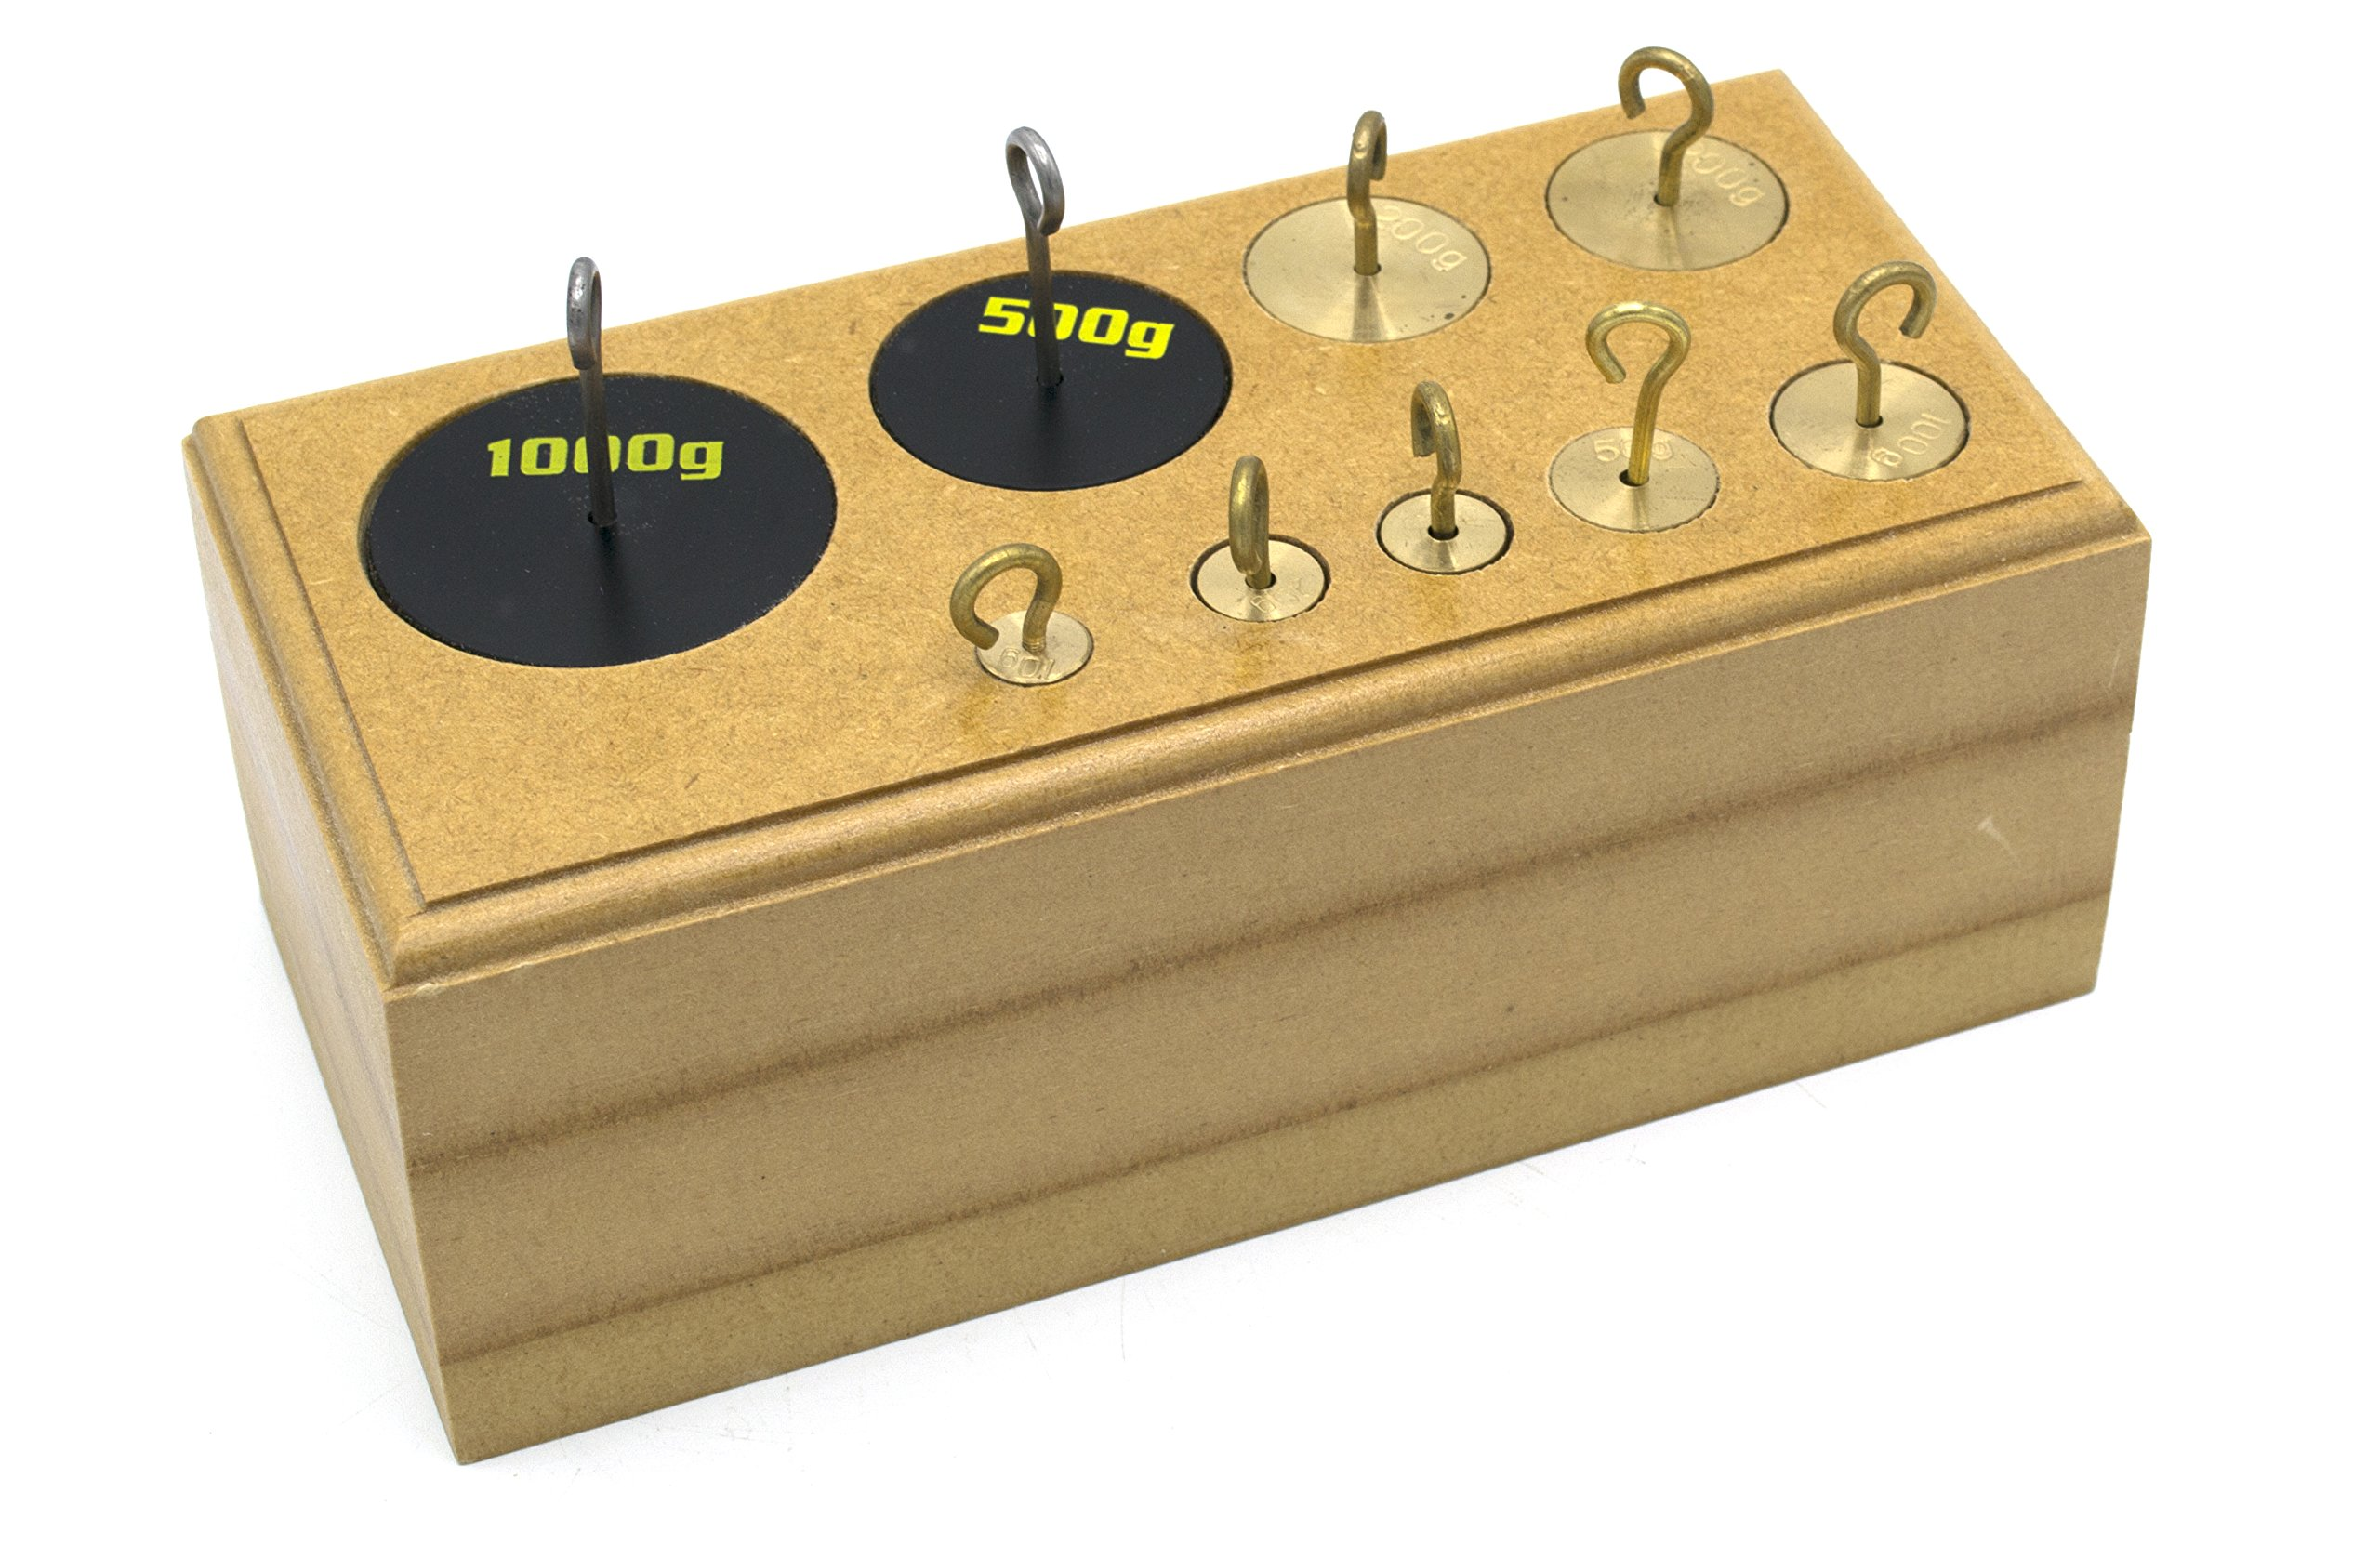 Eisco Labs Set of 9 Brass Hooked Weights - 10-1000g in Wooden Block by EISCO